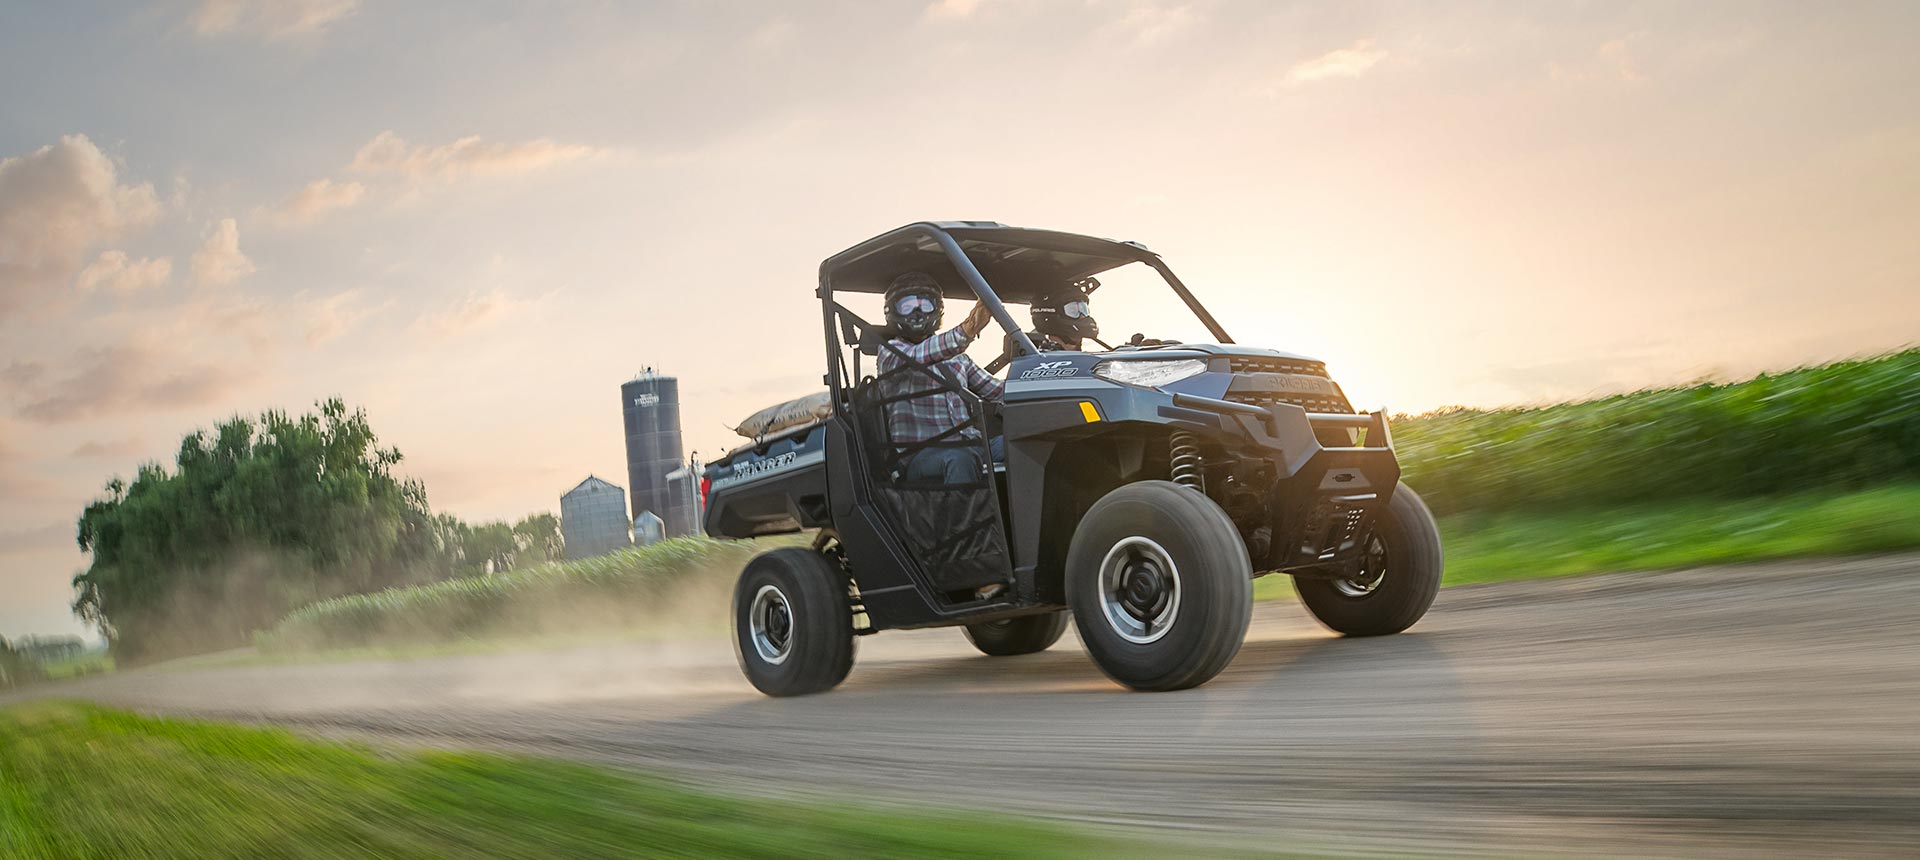 2019 Polaris Ranger XP 1000 EPS in Philadelphia, Pennsylvania - Photo 11